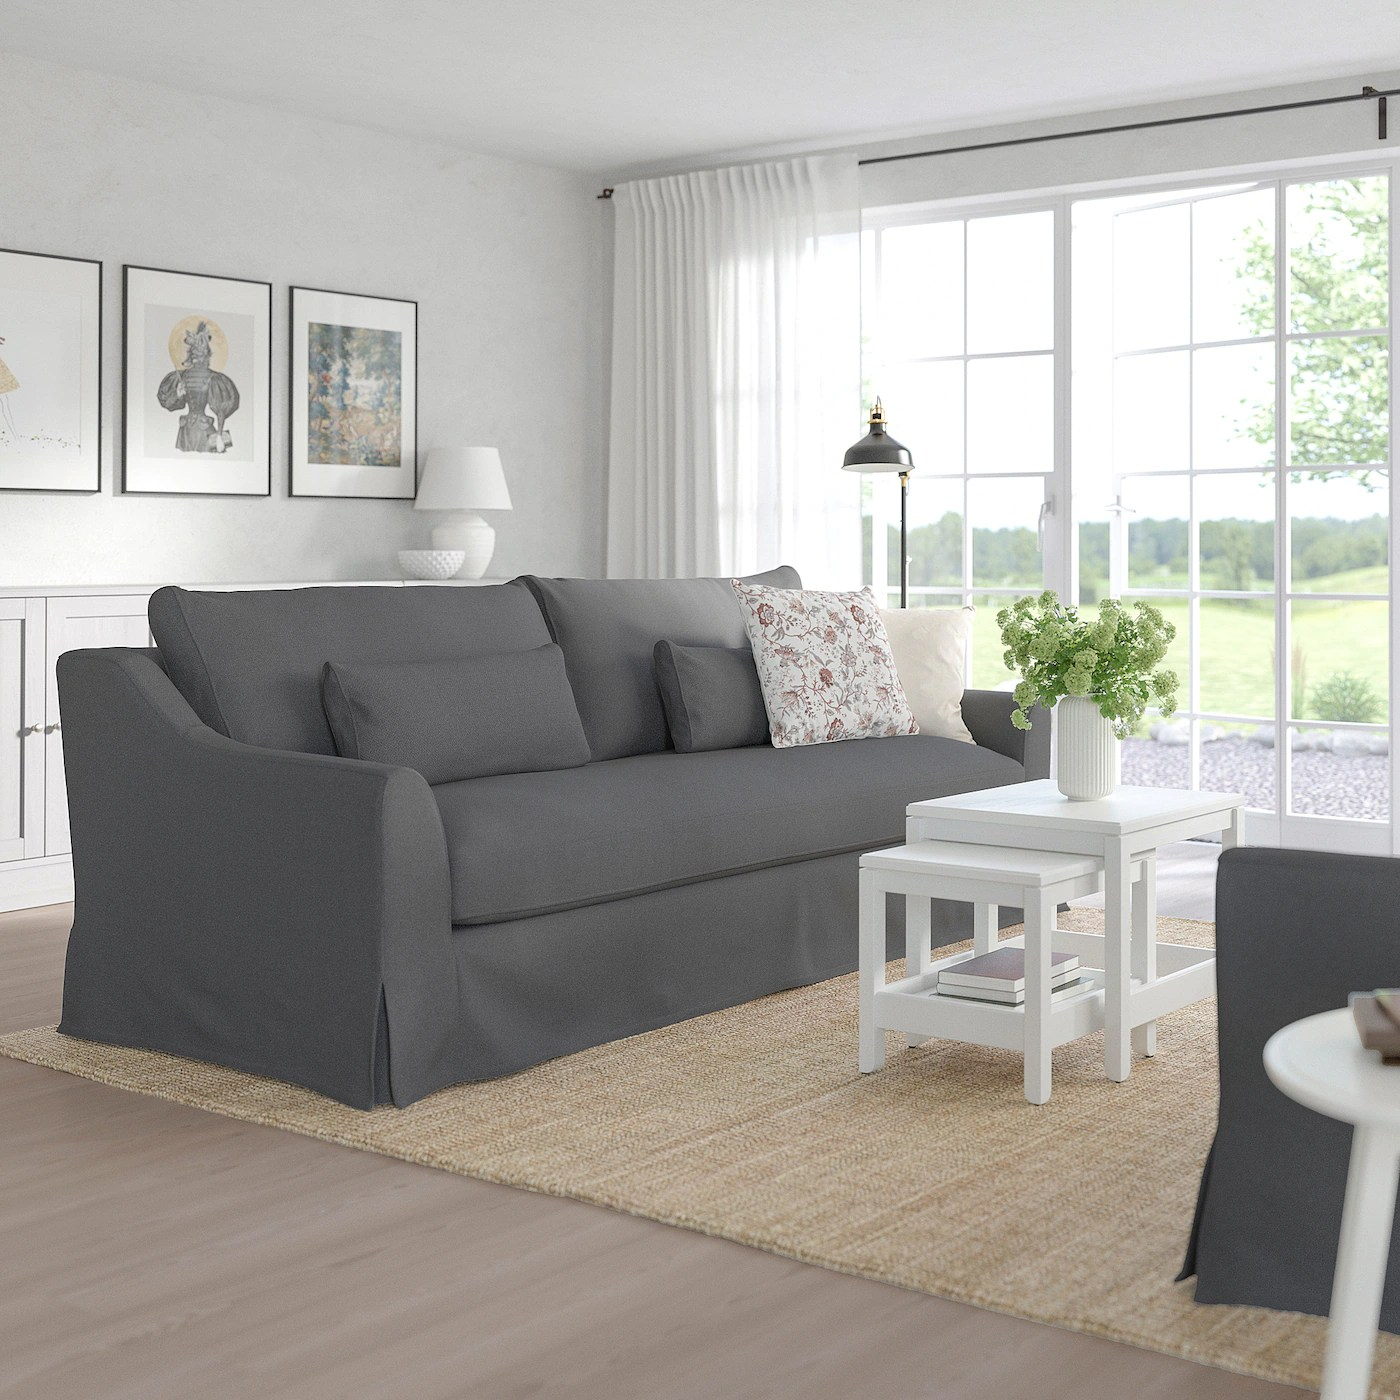 Before the tv was removed i tried out the stocksund furniture from ikea. FÄRLÖV 3-seat sofa - Flodafors grey - IKEA